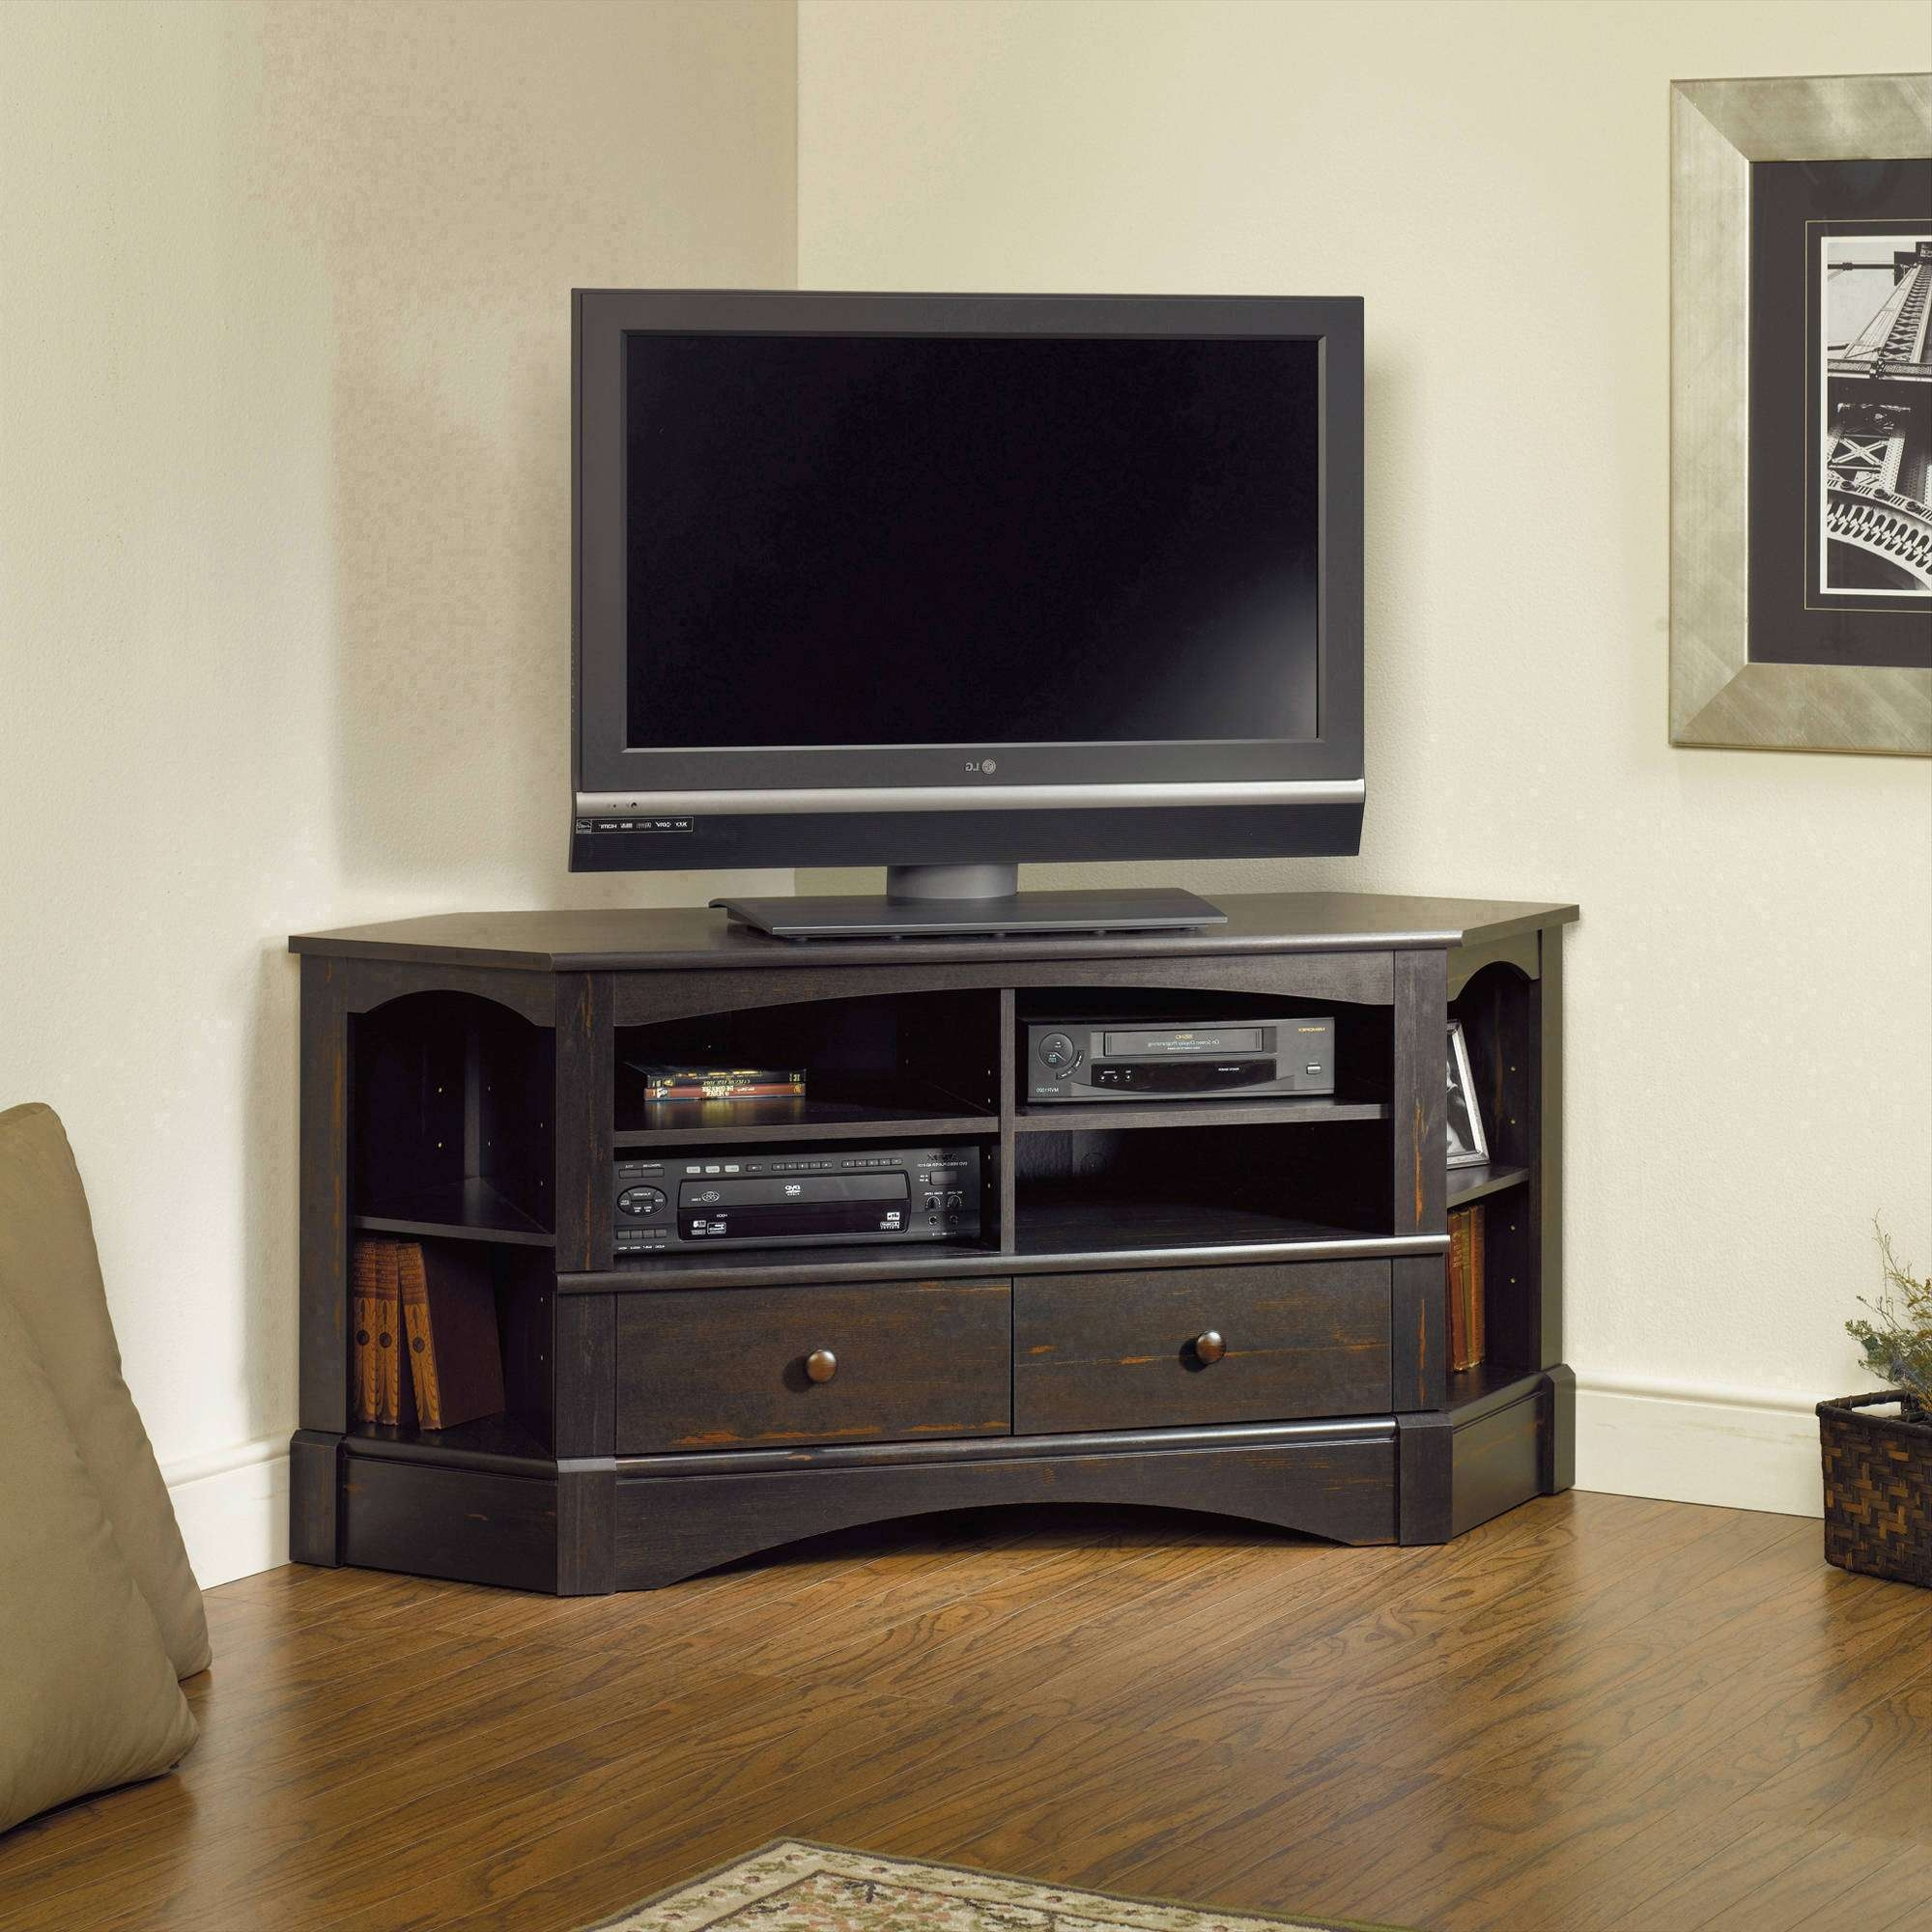 Tv Stand : 32 Unusual 55 Inch Corner Tv Stand With Mount Images In Corner 60 Inch Tv Stands (View 10 of 15)